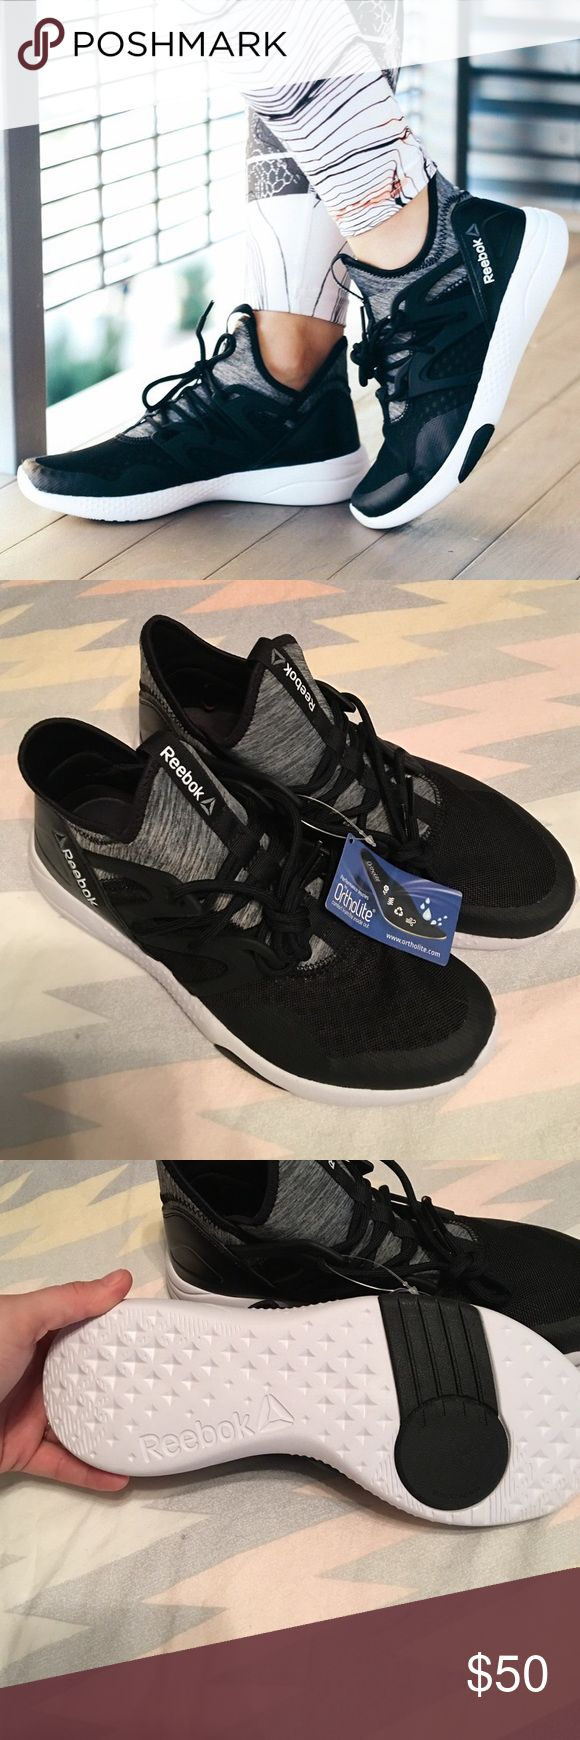 """Reebok Hayasu sneakers NWT Never work, tags still on reebok size 8 hayasu """"dance"""" sneakers. I have another pair that I wear and are the most comfortable sneakers I own. Reebok Shoes Athletic Shoes"""